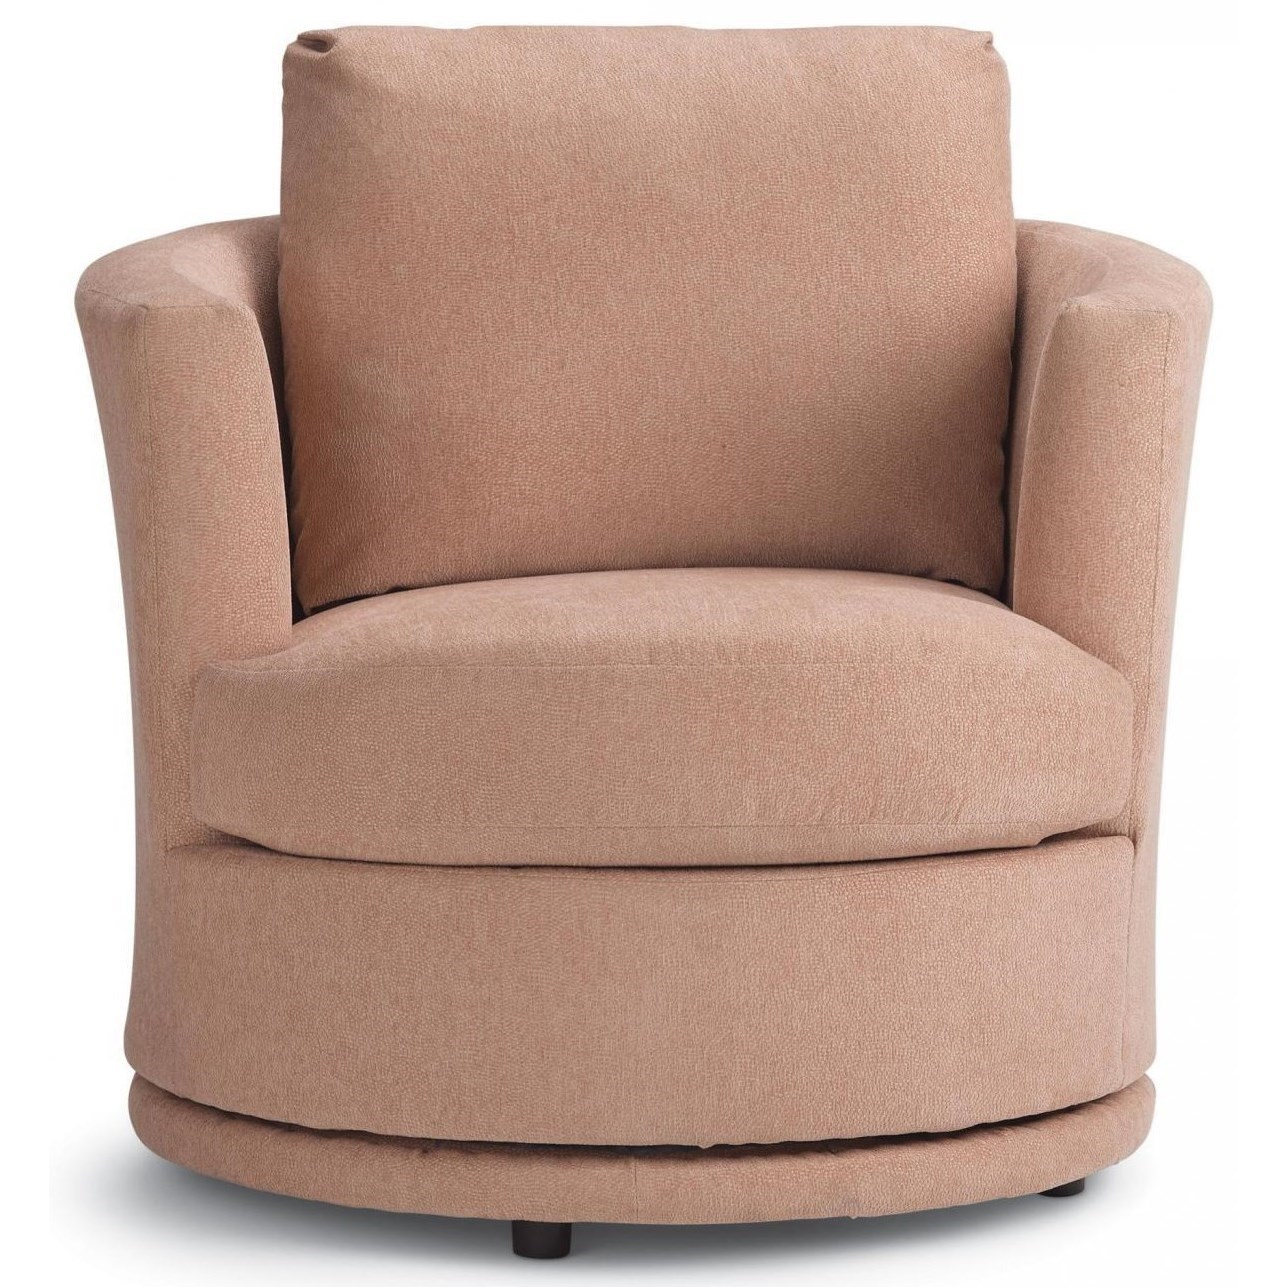 Picture of: Best Home Furnishings Tina Mid Century Modern Swivel Barrel Chair A1 Furniture Mattress Upholstered Chairs